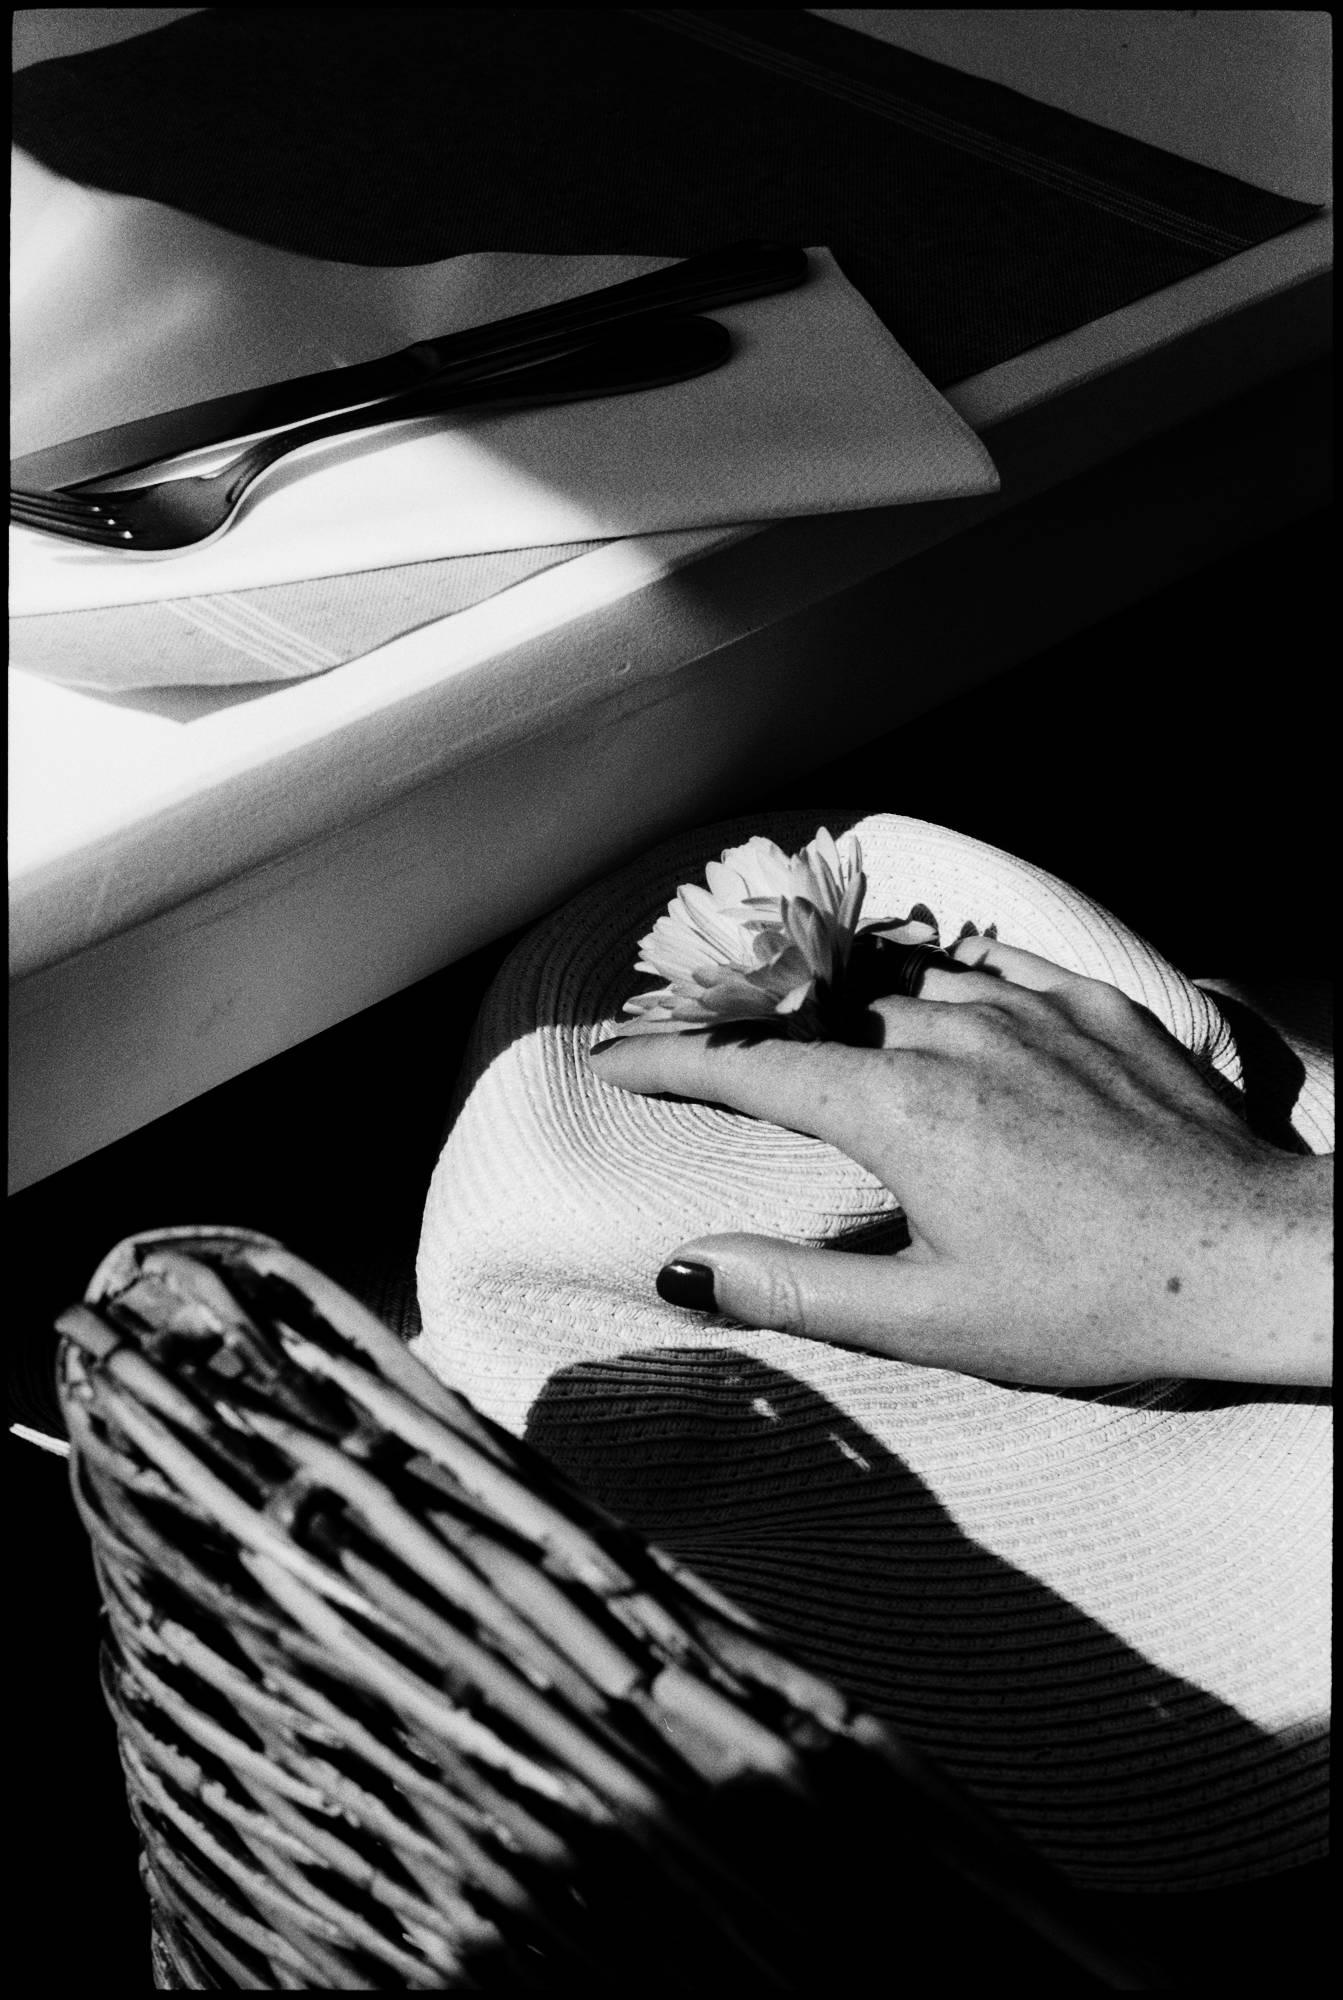 Original Photography by Cyrille Druart